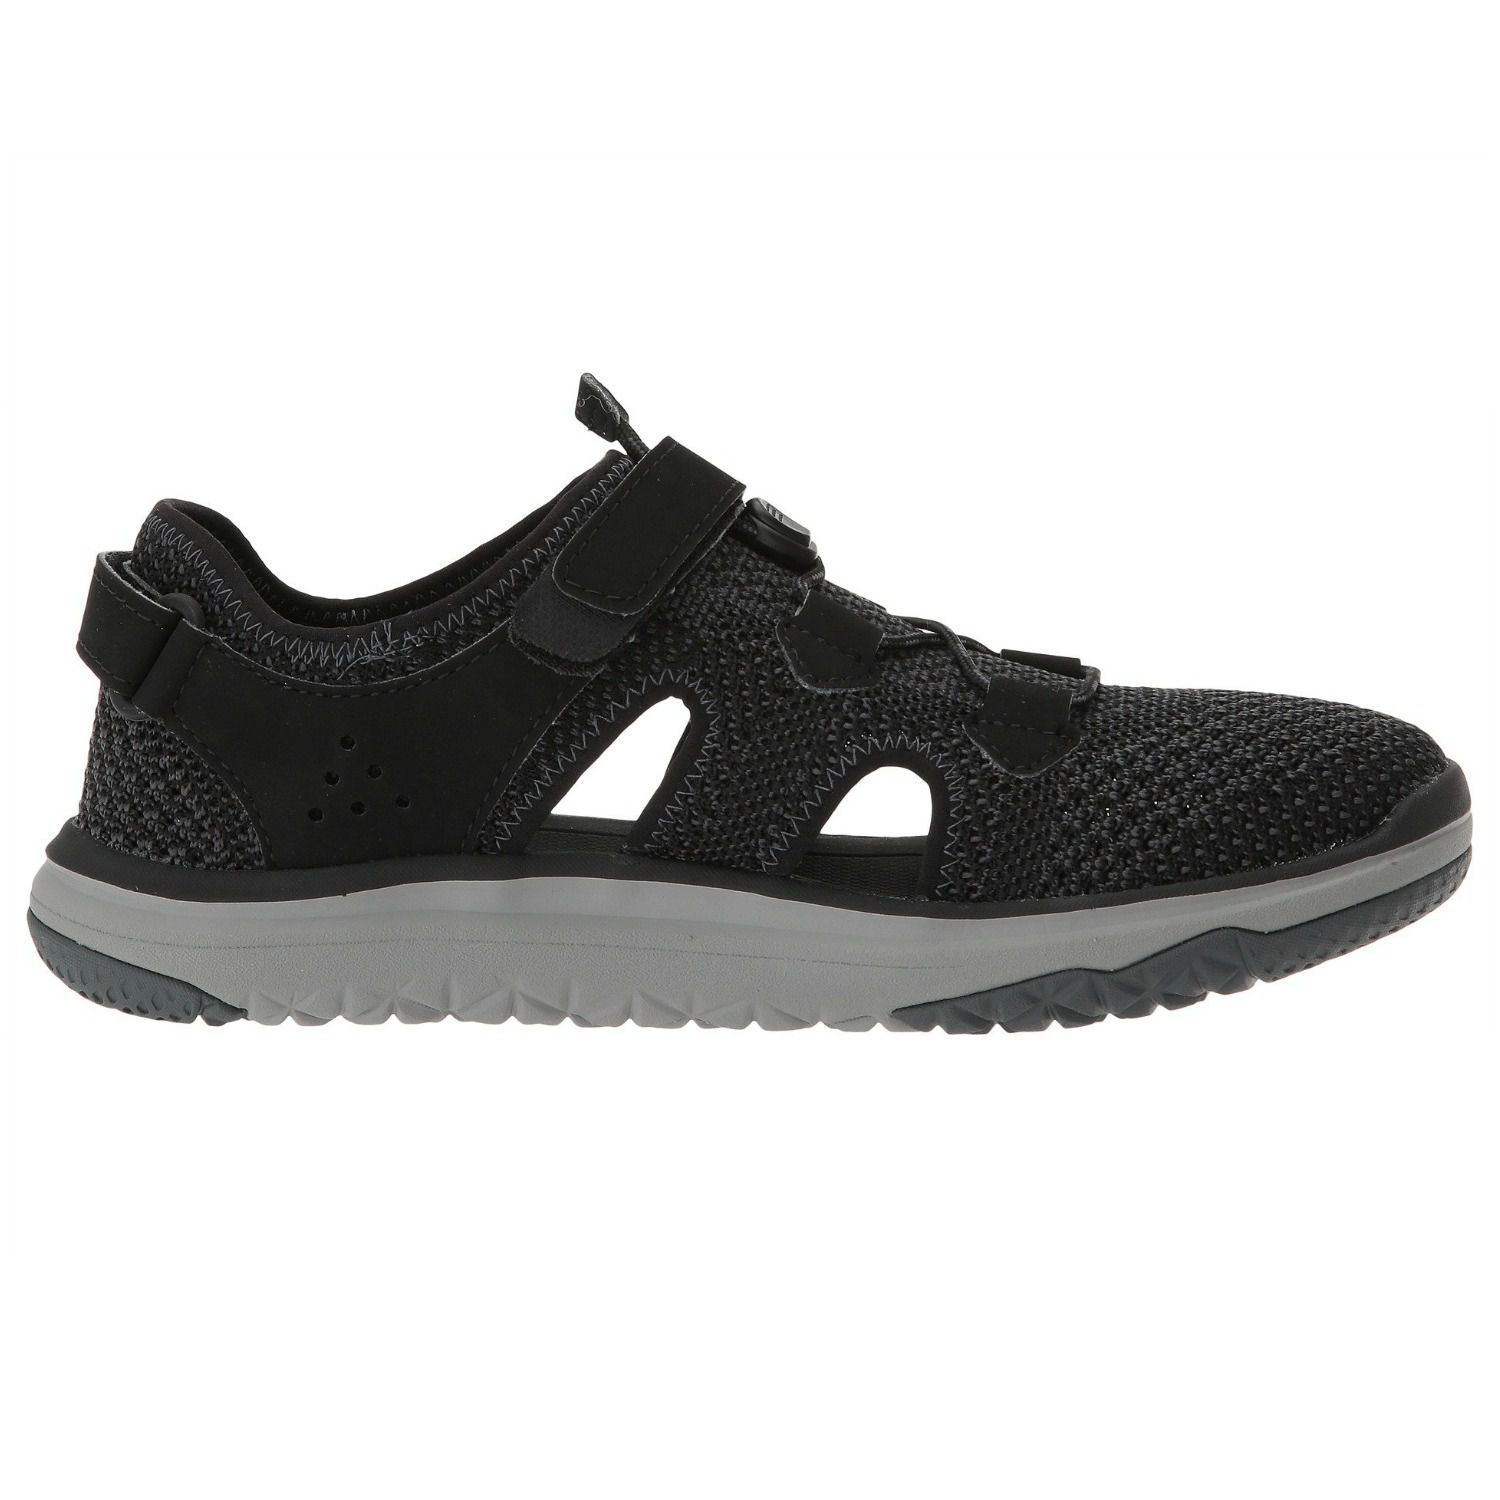 4974cf025ae5 10 Best Water Shoes for 2019 - Waterproof Shoes for Men   Women